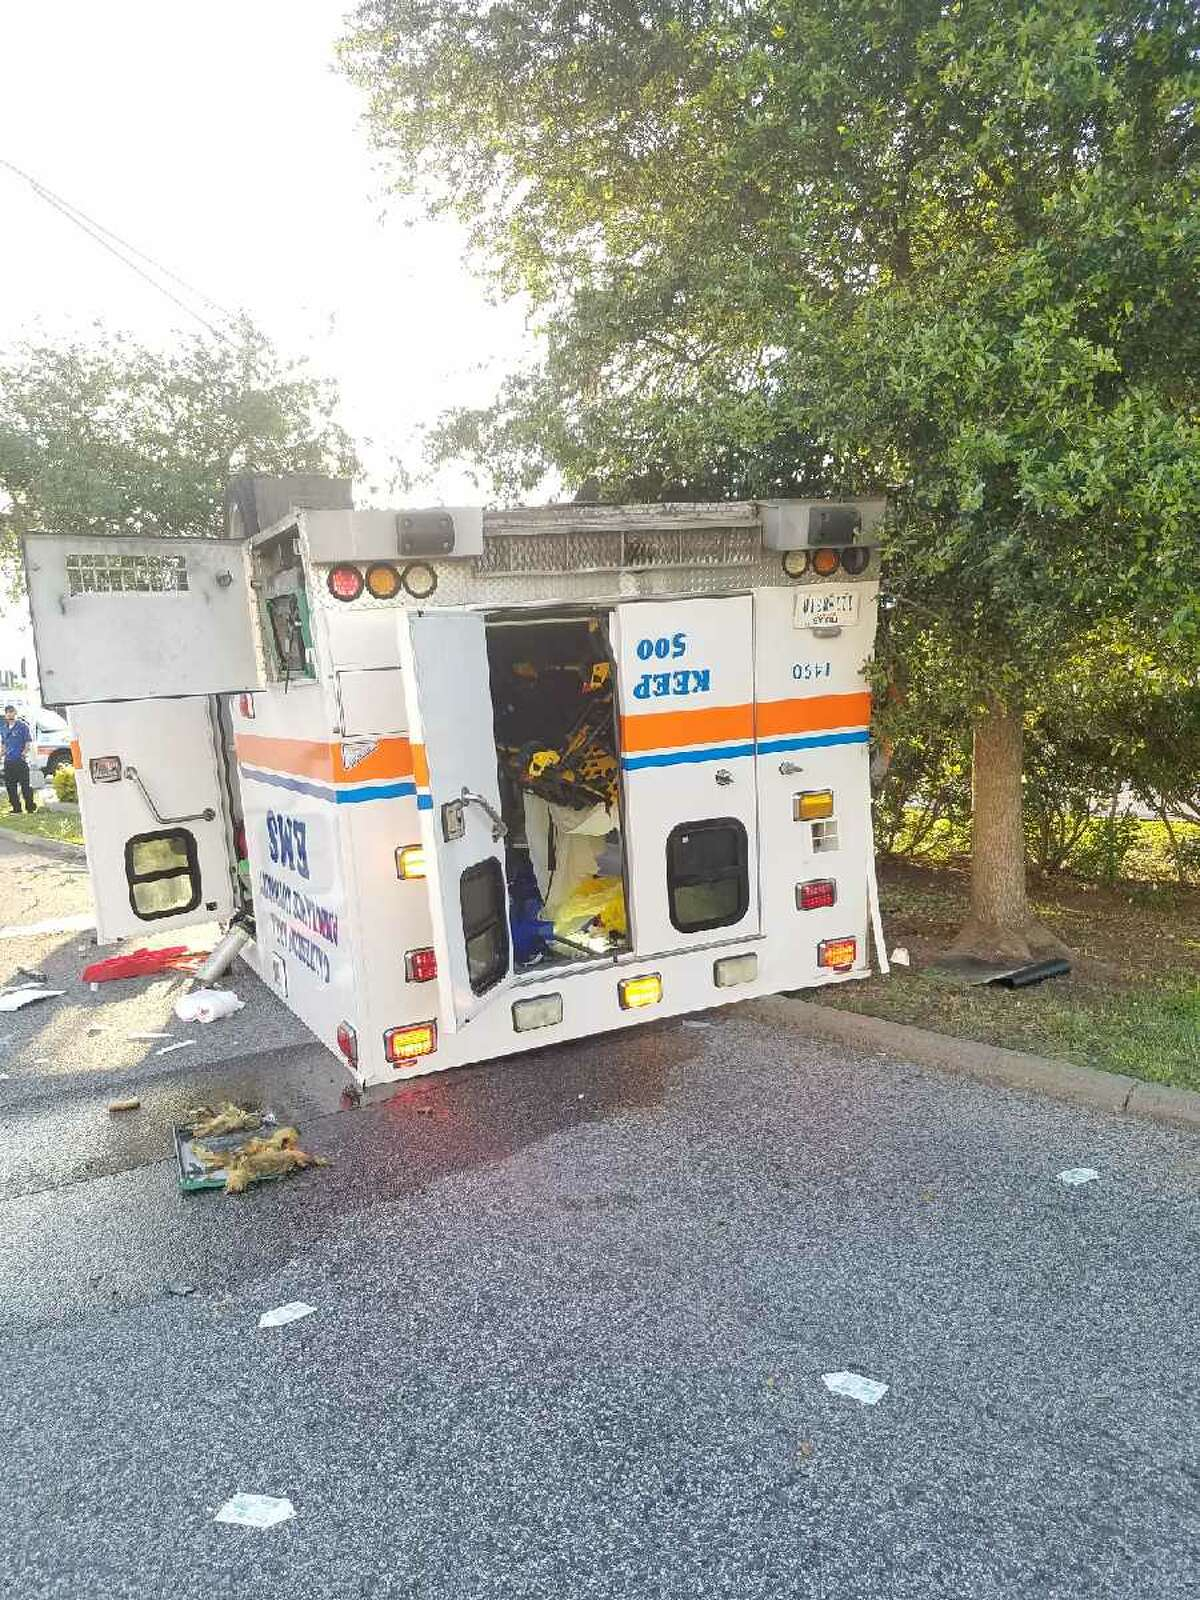 There were no serious injuries after an ambulance crash in Galveston.